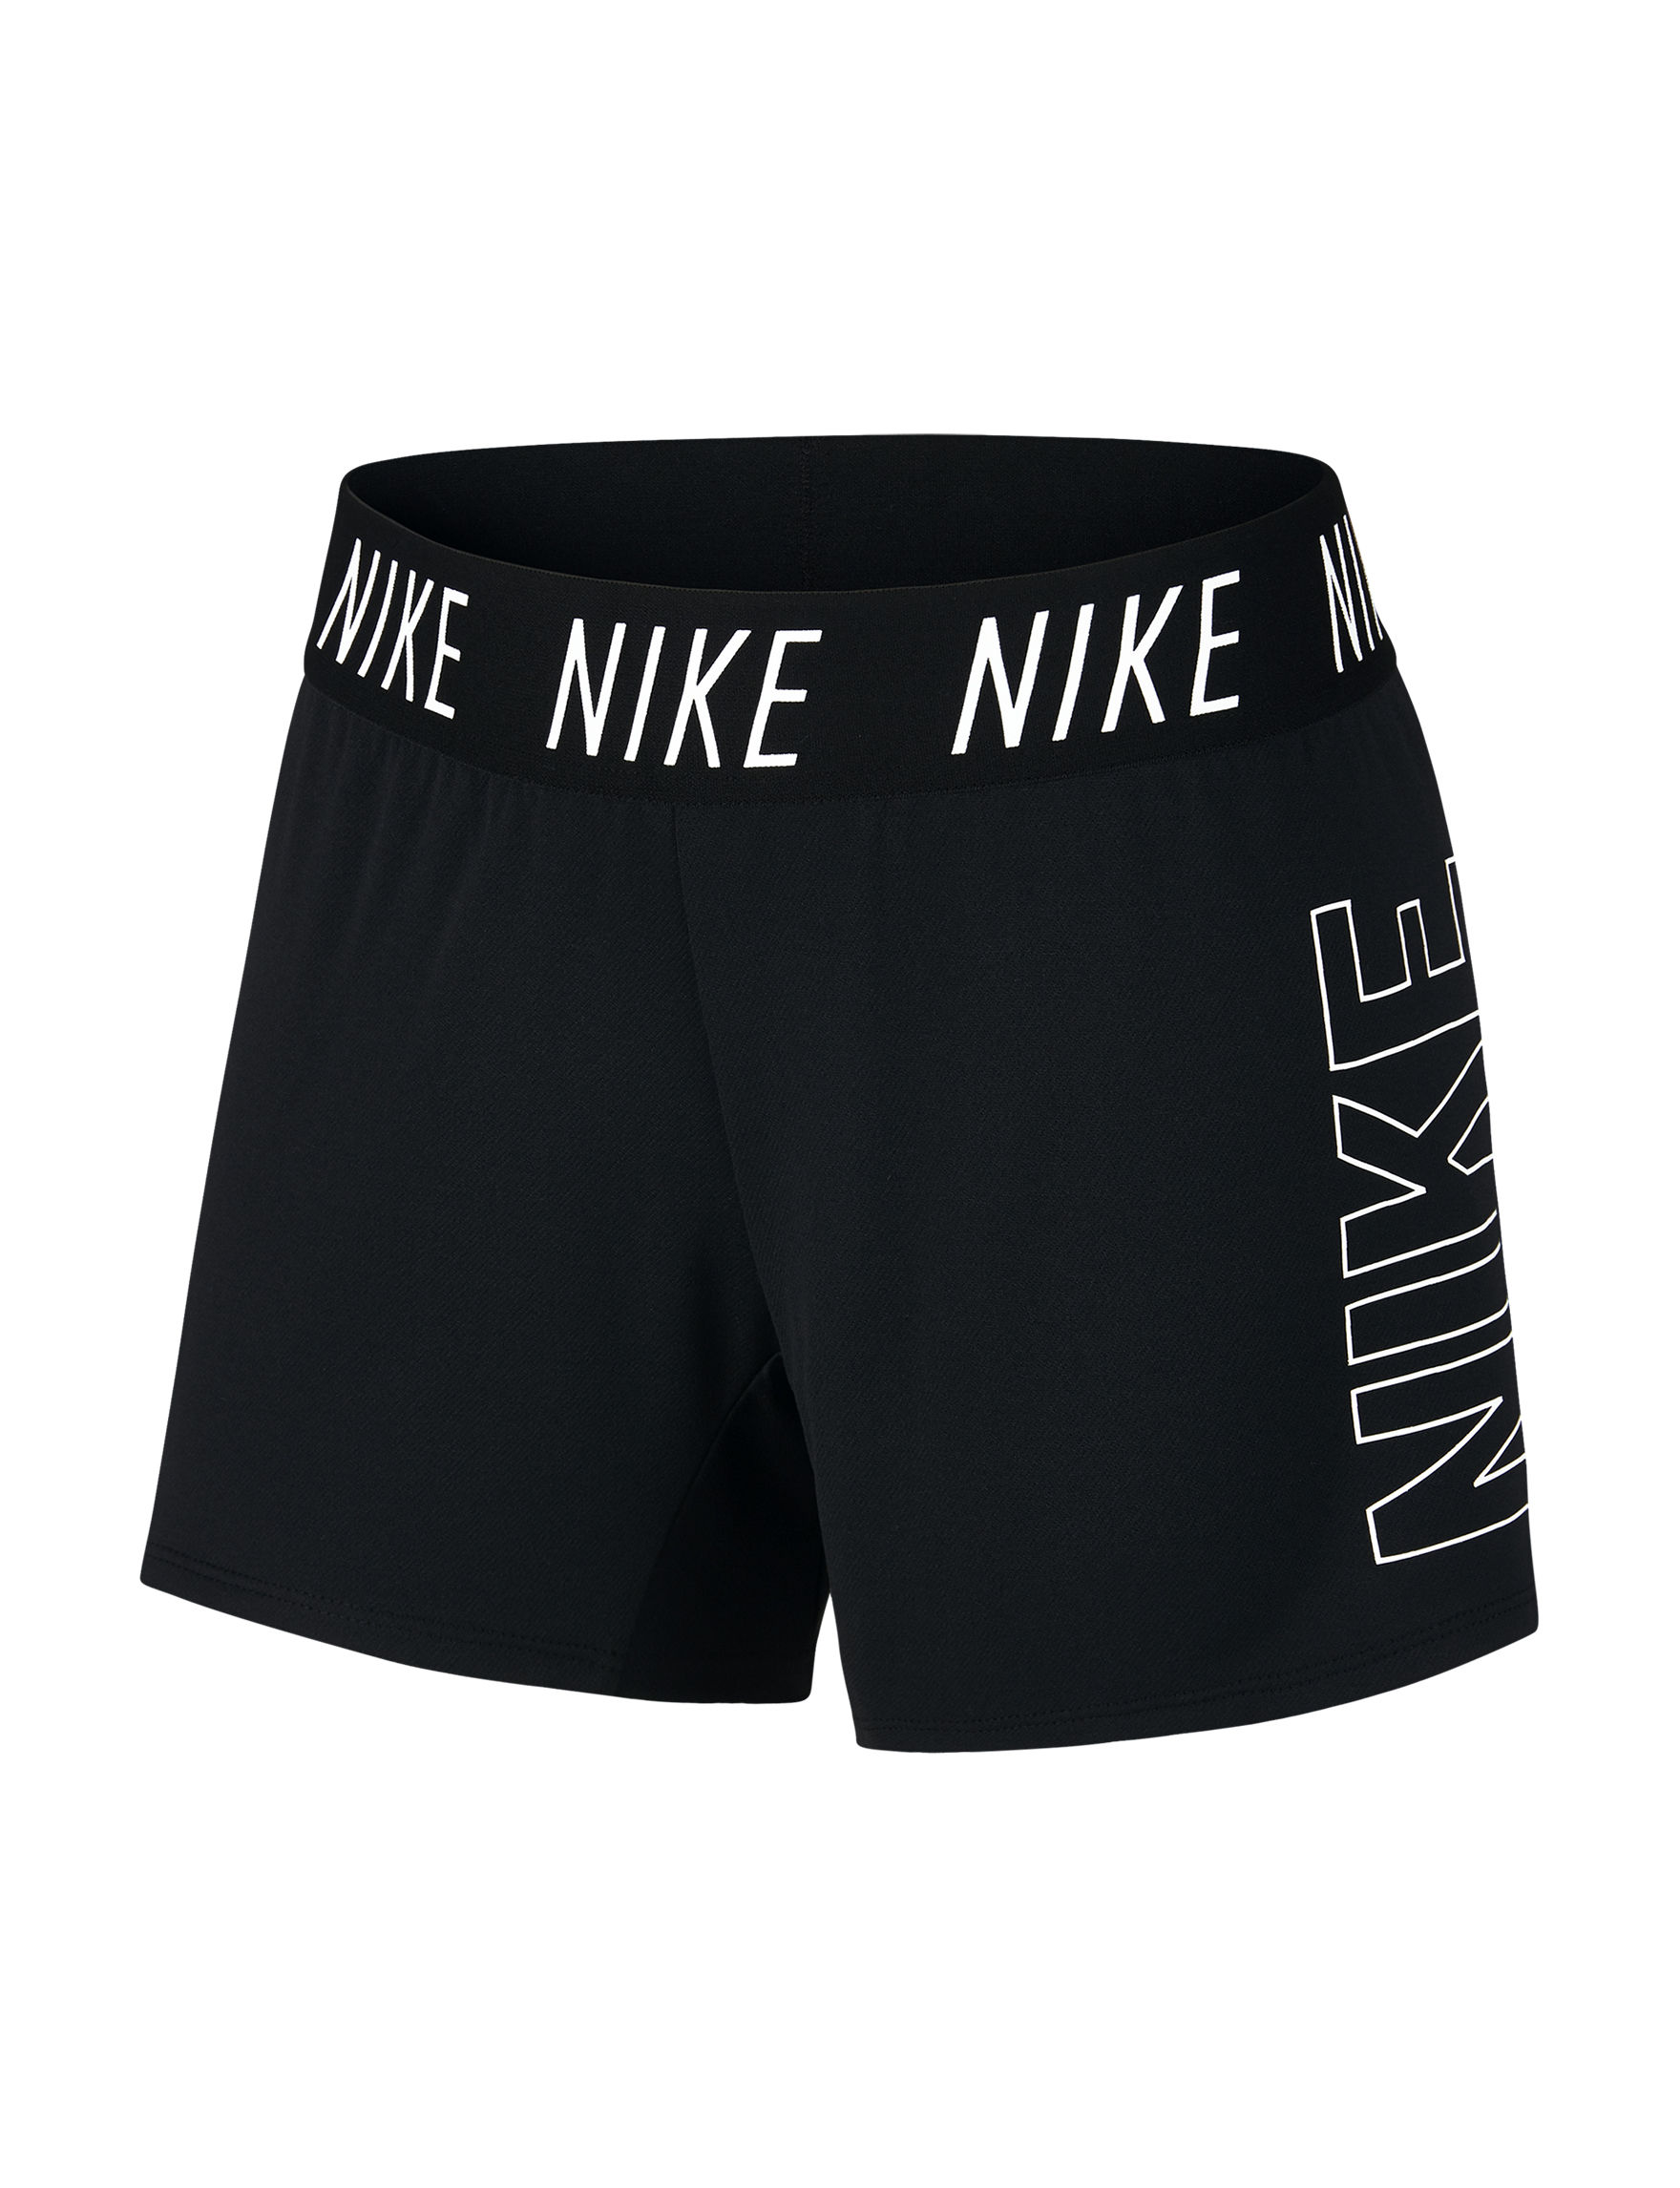 Nike Black Relaxed Stretch